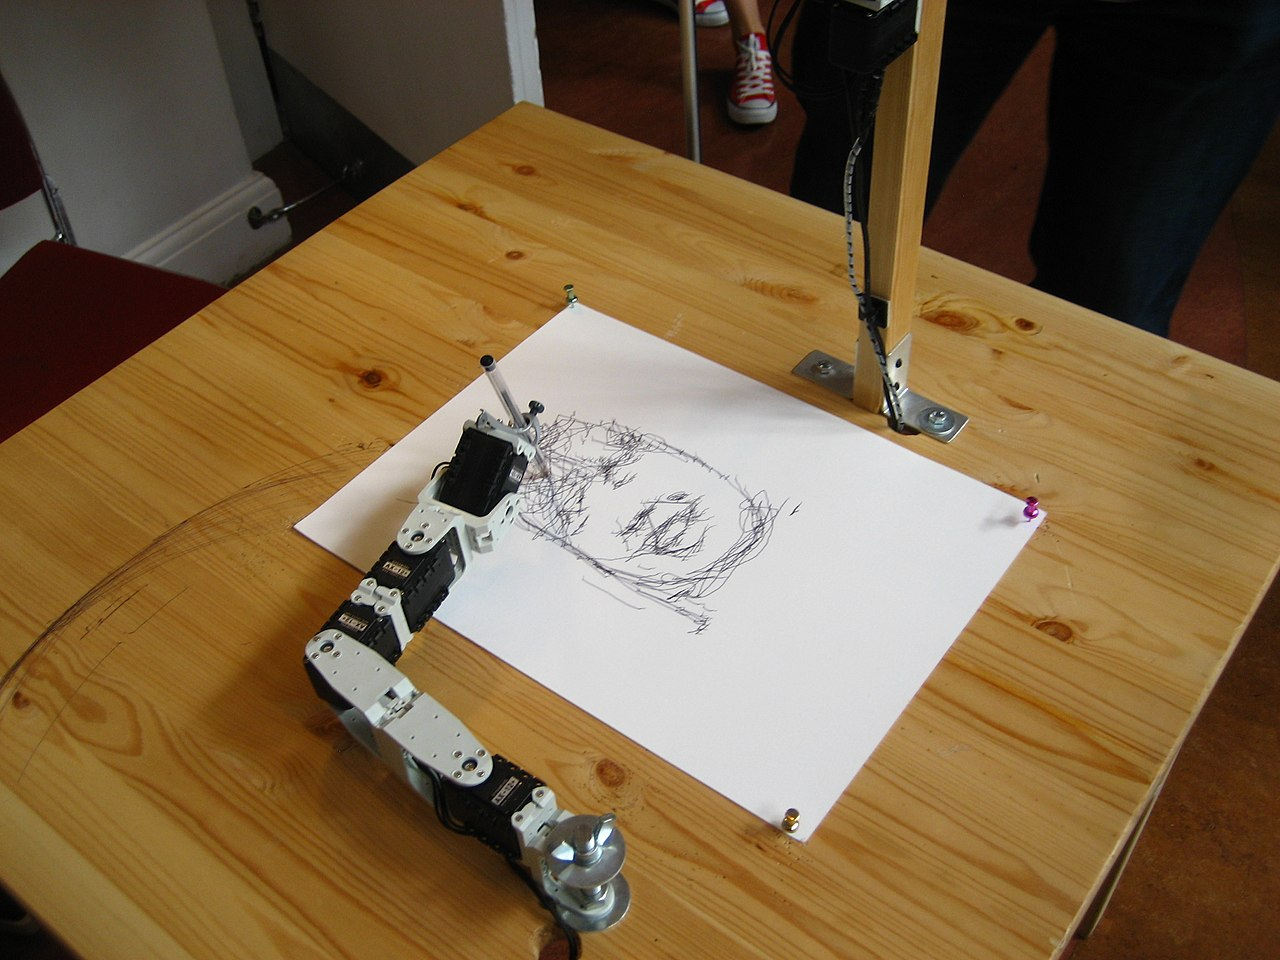 File:Robot drawing - Brighton Mini Maker Fair 2011.jpg - Wikimedia ...